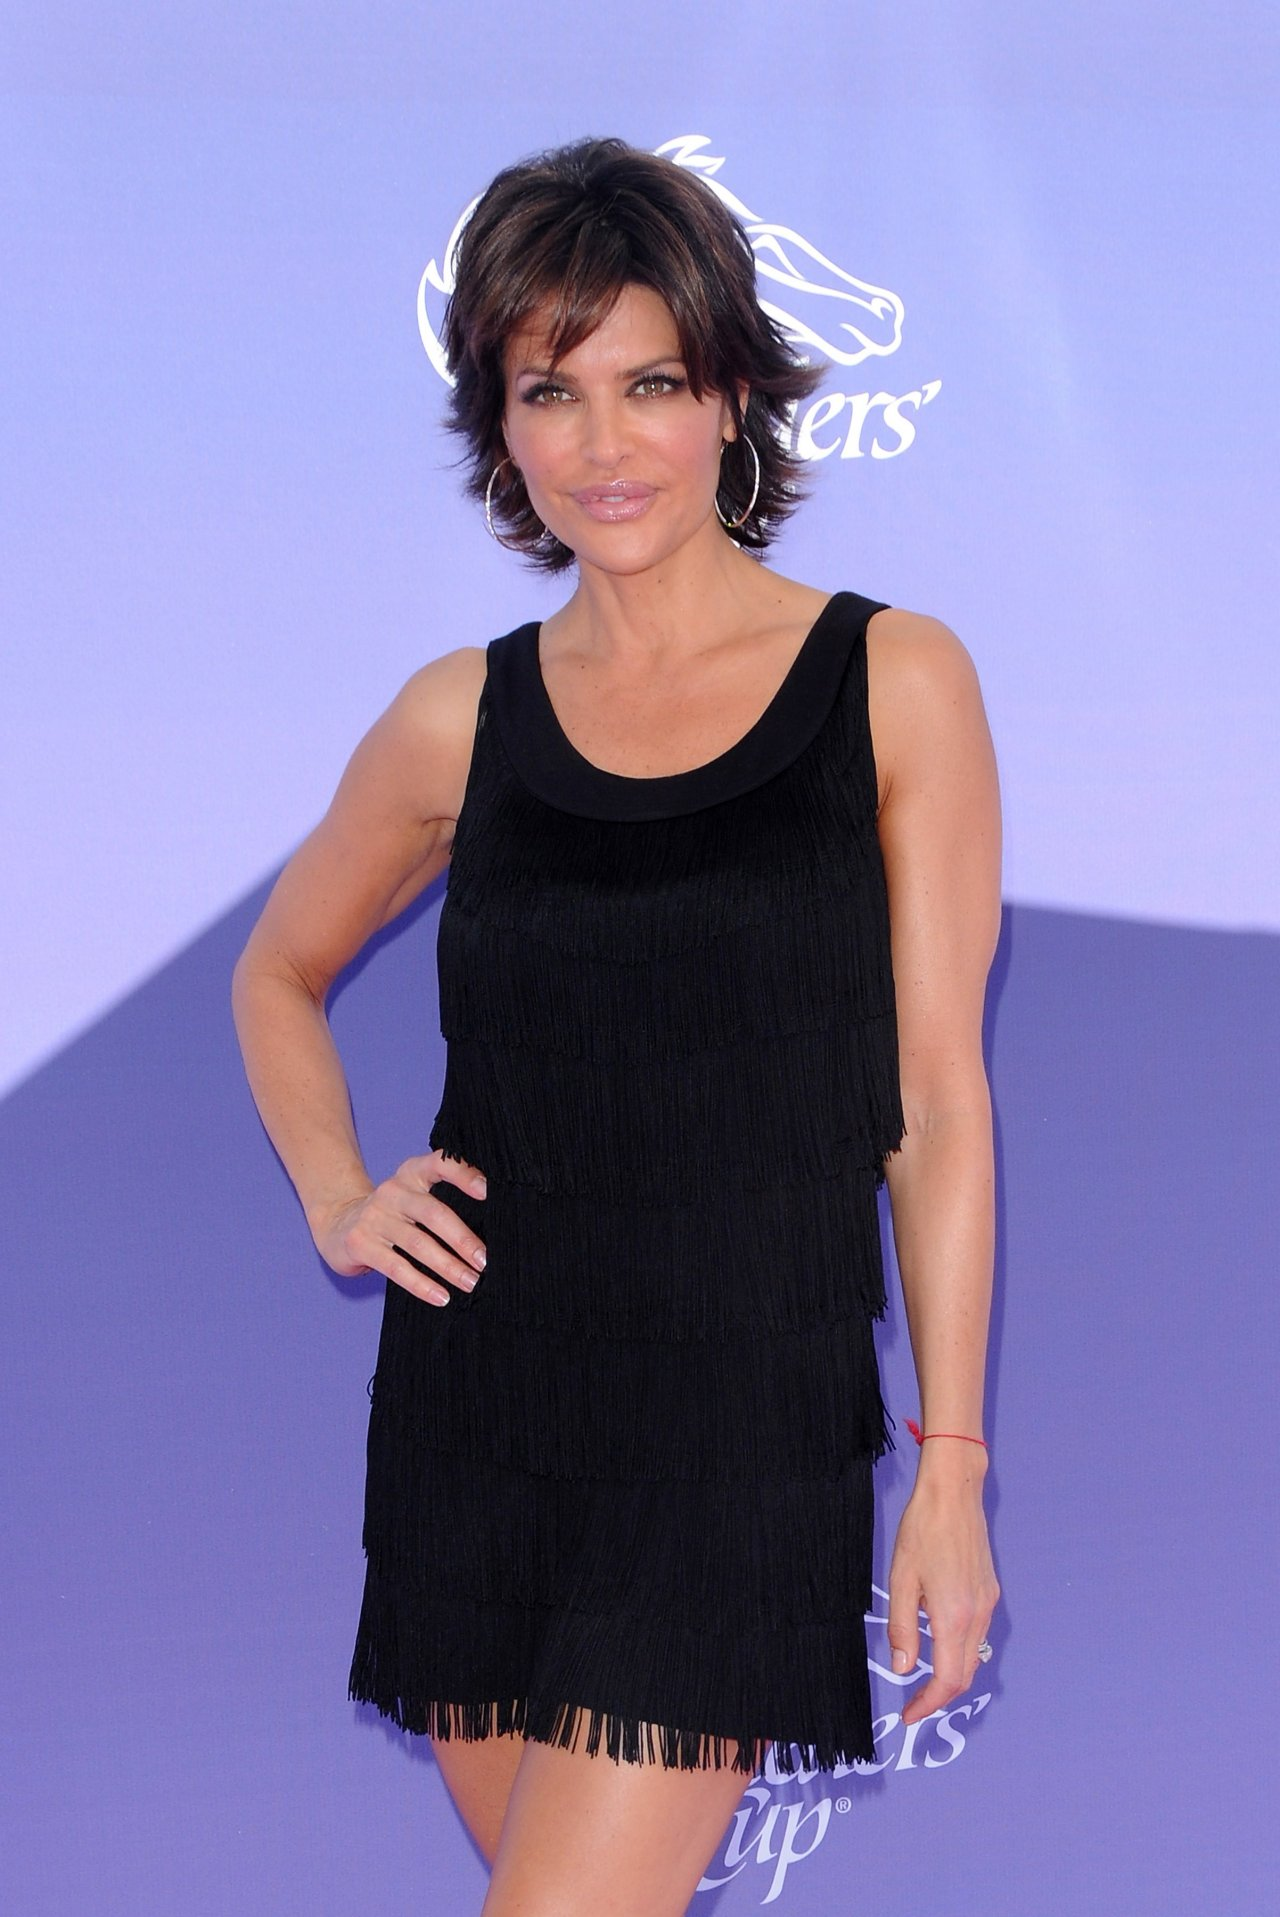 Short Hairstyle Girls Wallpapers Lisa Rinna Famous Board